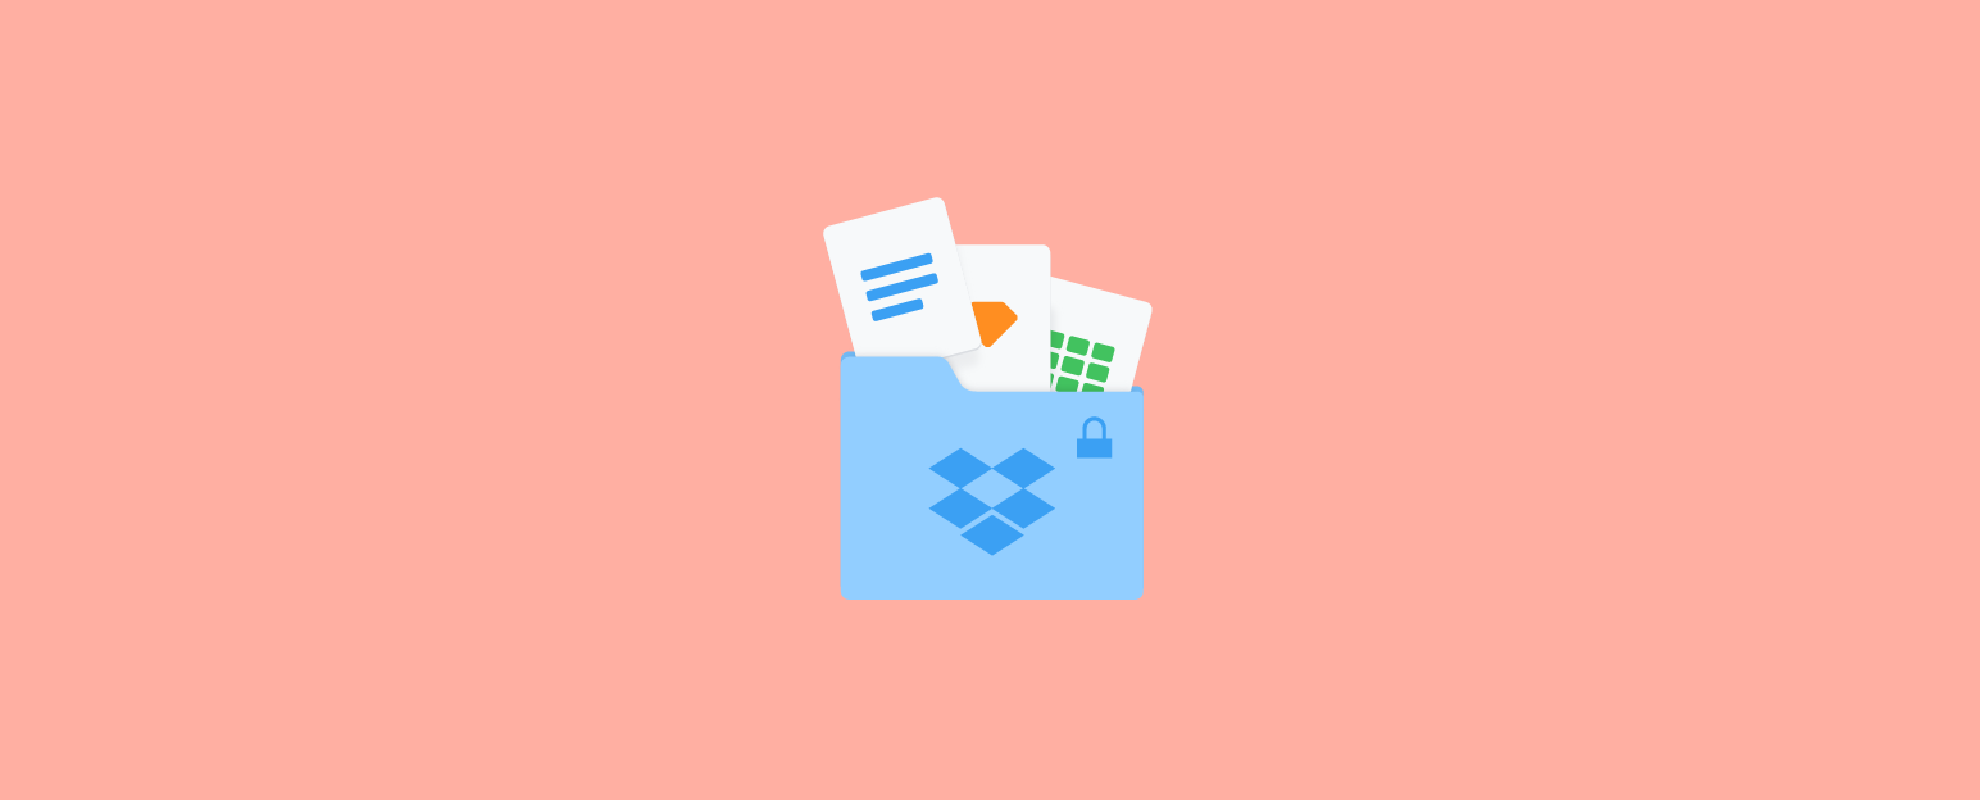 3 documents sticking out from the top of a Dropbox folder with a padlock on it